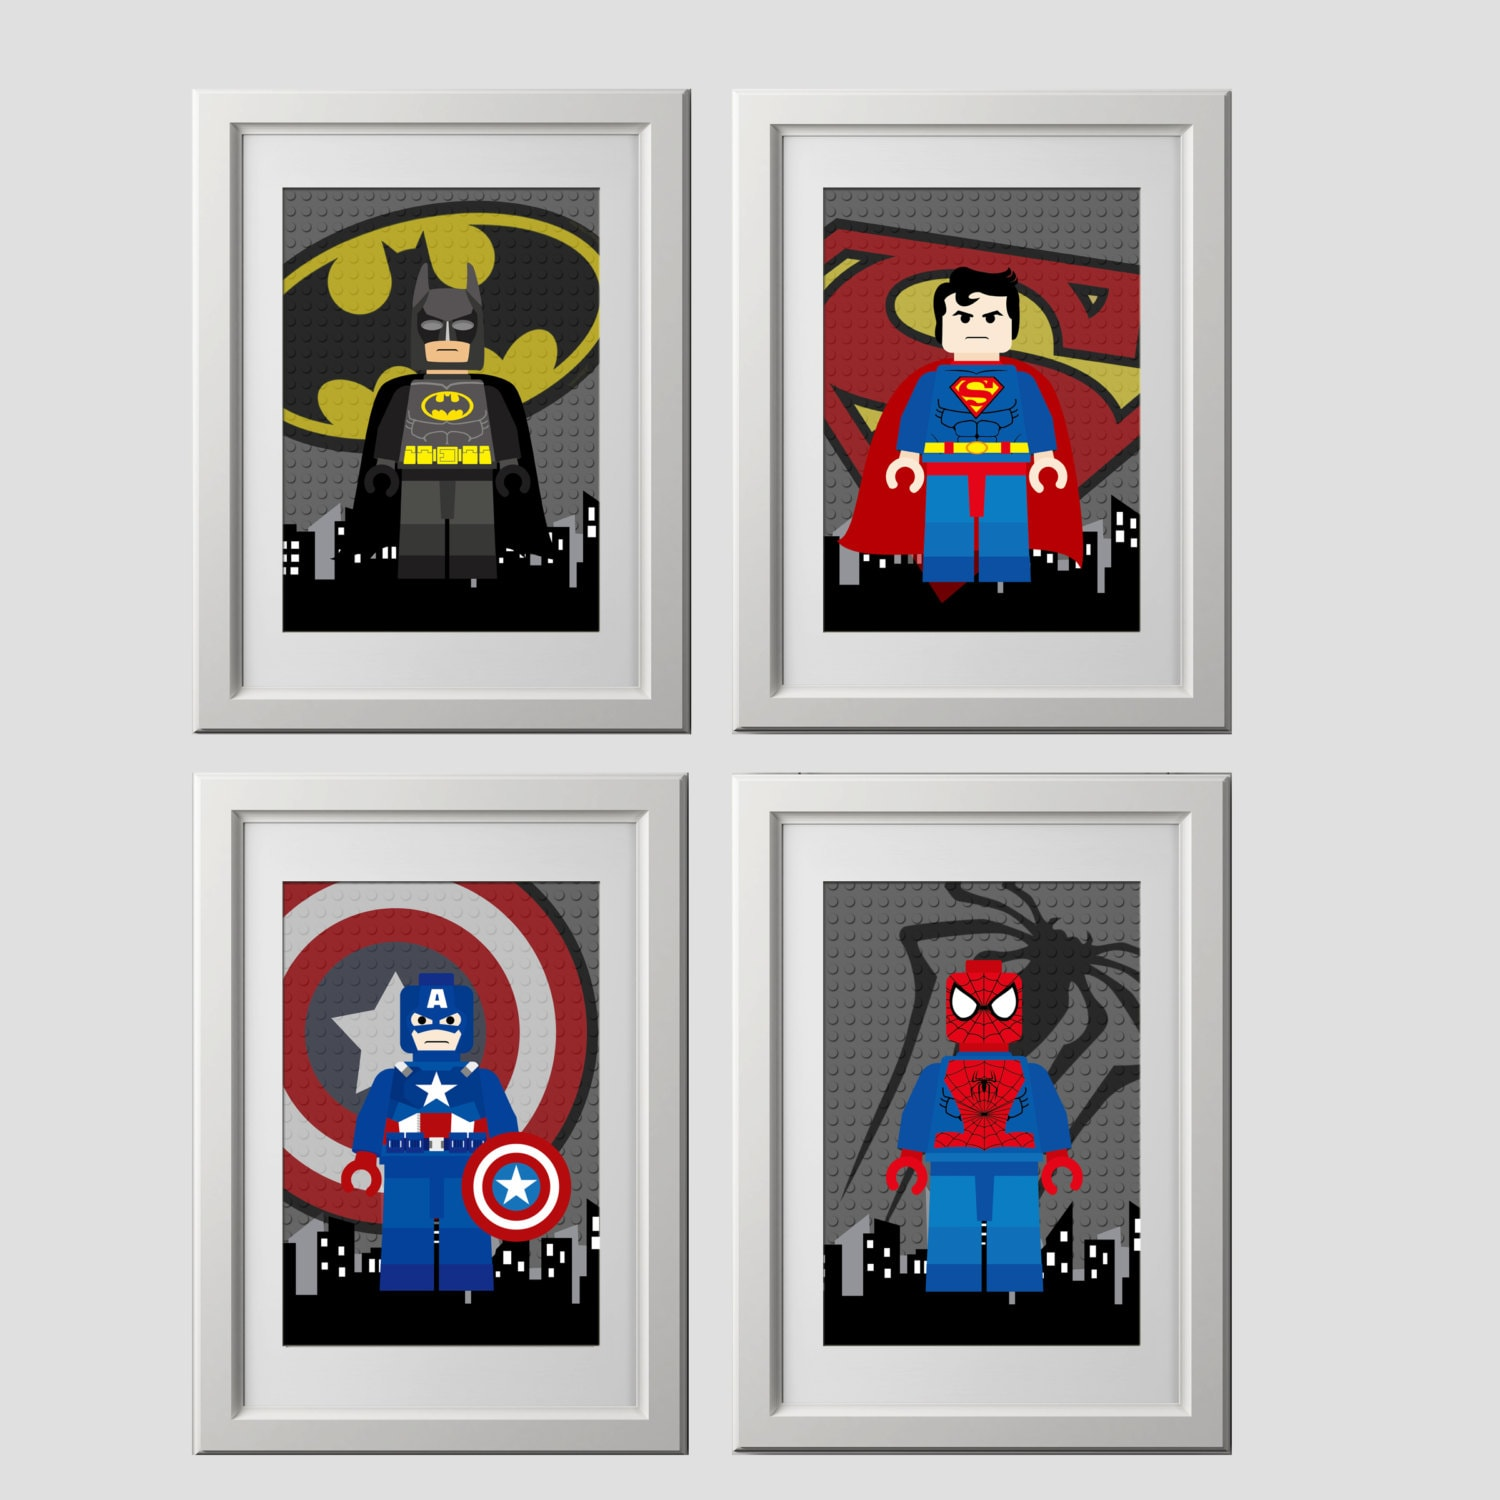 lego superhero wall art prints batman by amysdesignshoppe on etsy. Black Bedroom Furniture Sets. Home Design Ideas